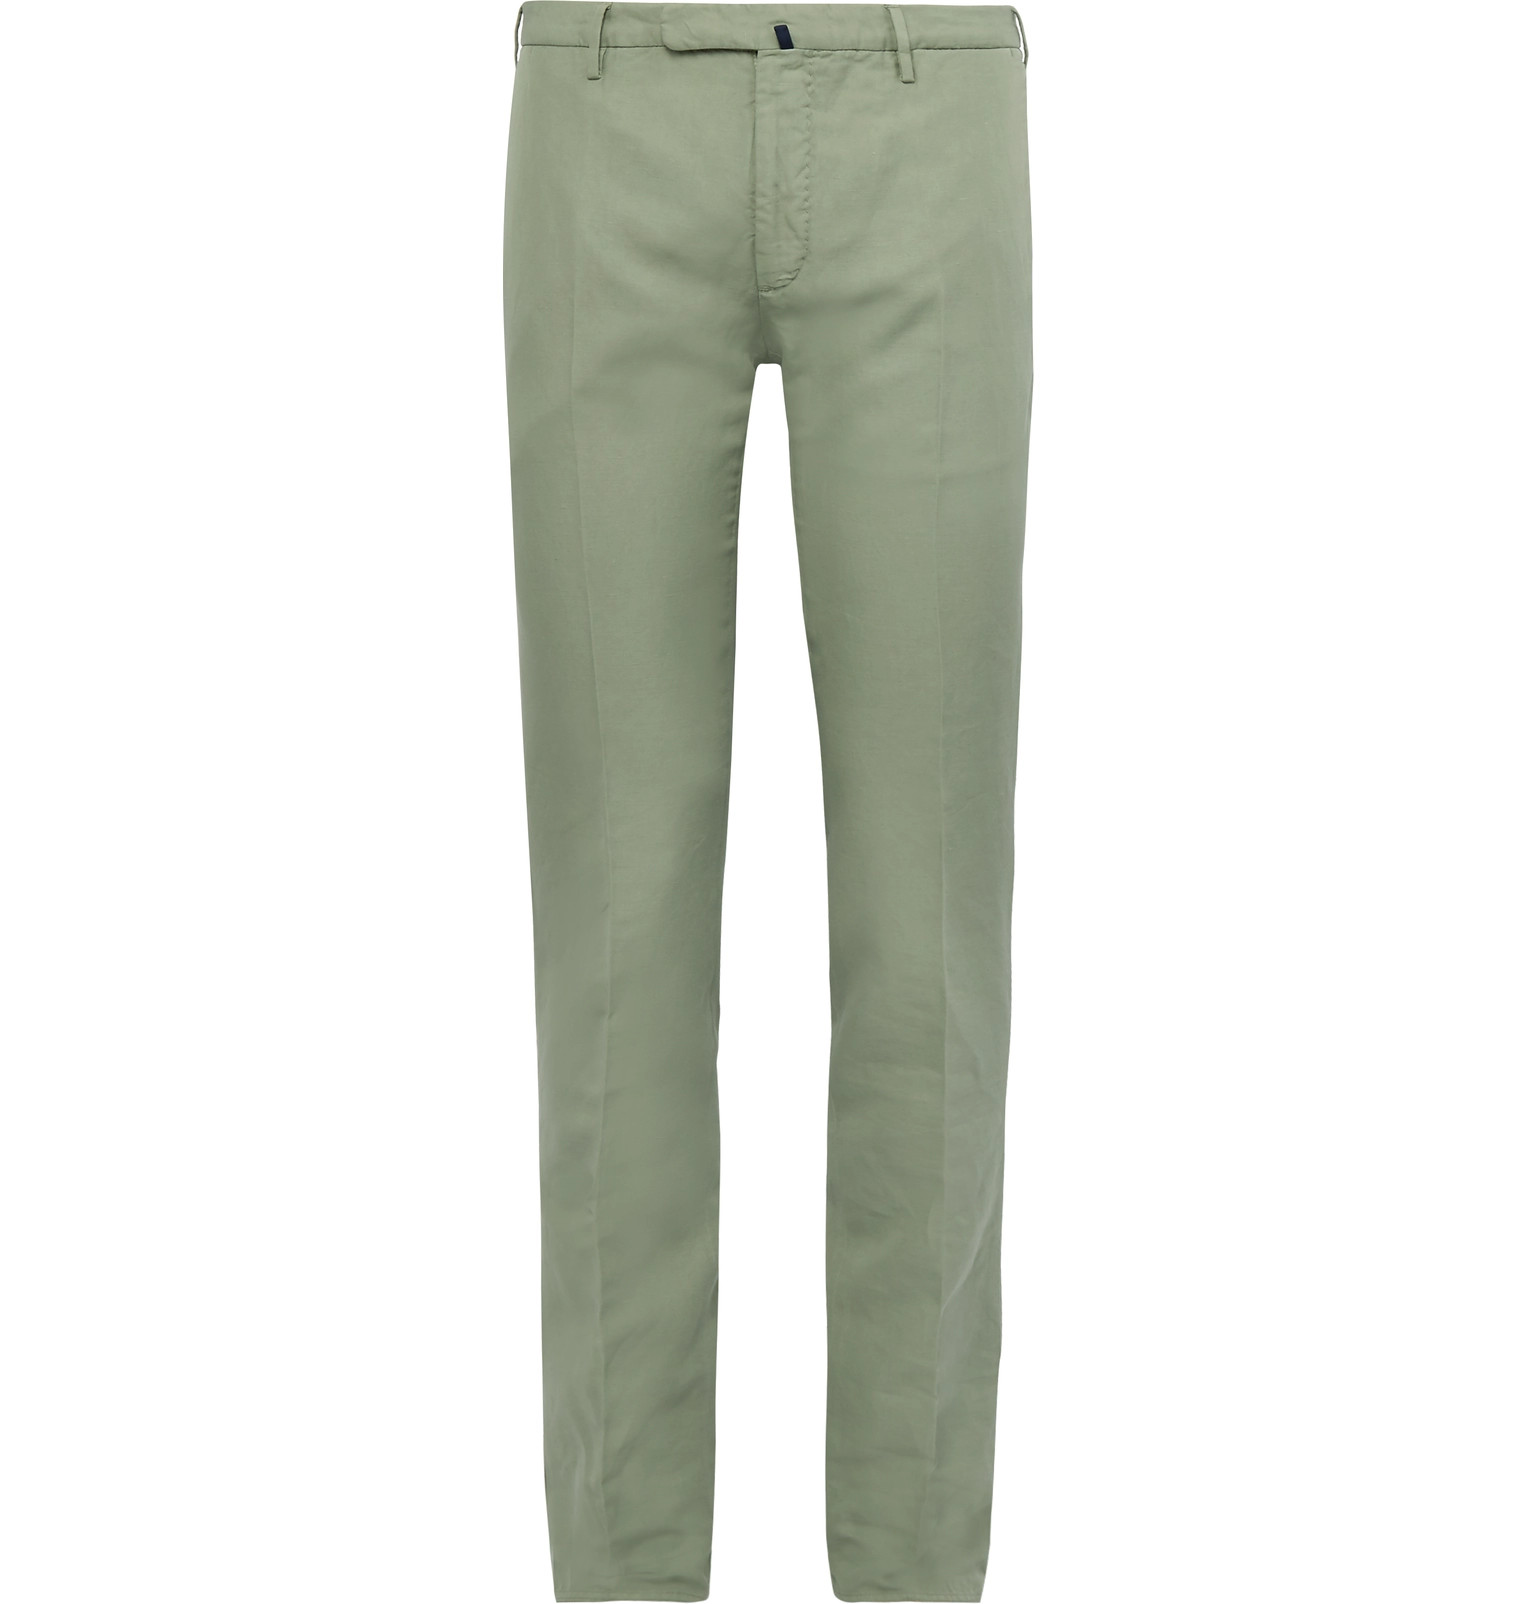 Incotex - Slim-Fit Garment-Dyed Linen and Cotton-Blend Chinos